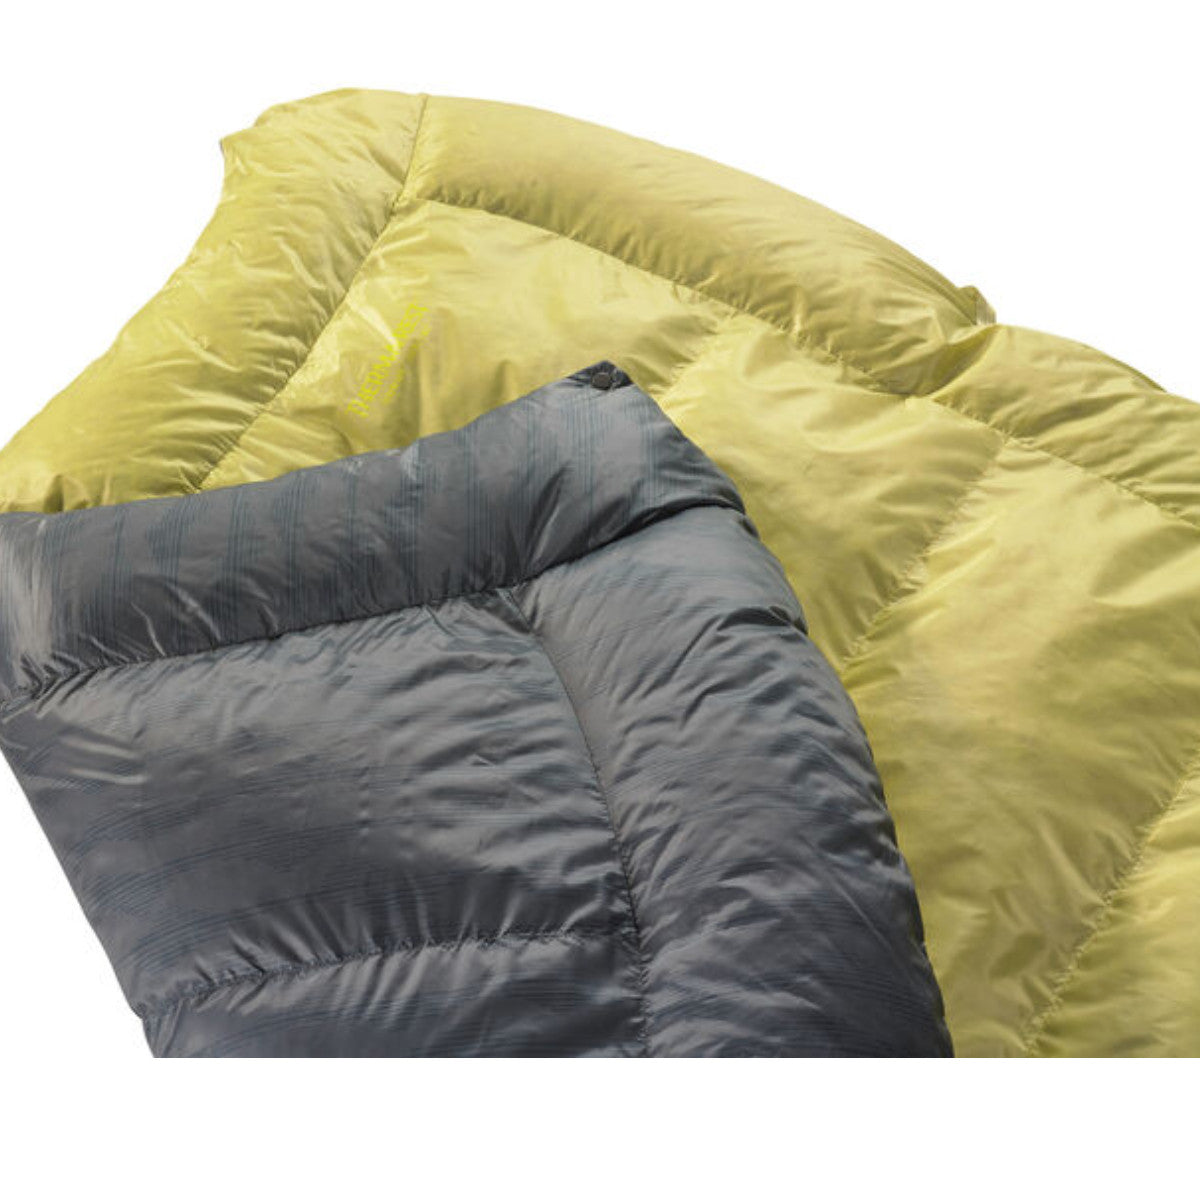 Thermarest Corus 20F/-6C Quilt in golden and grey close up